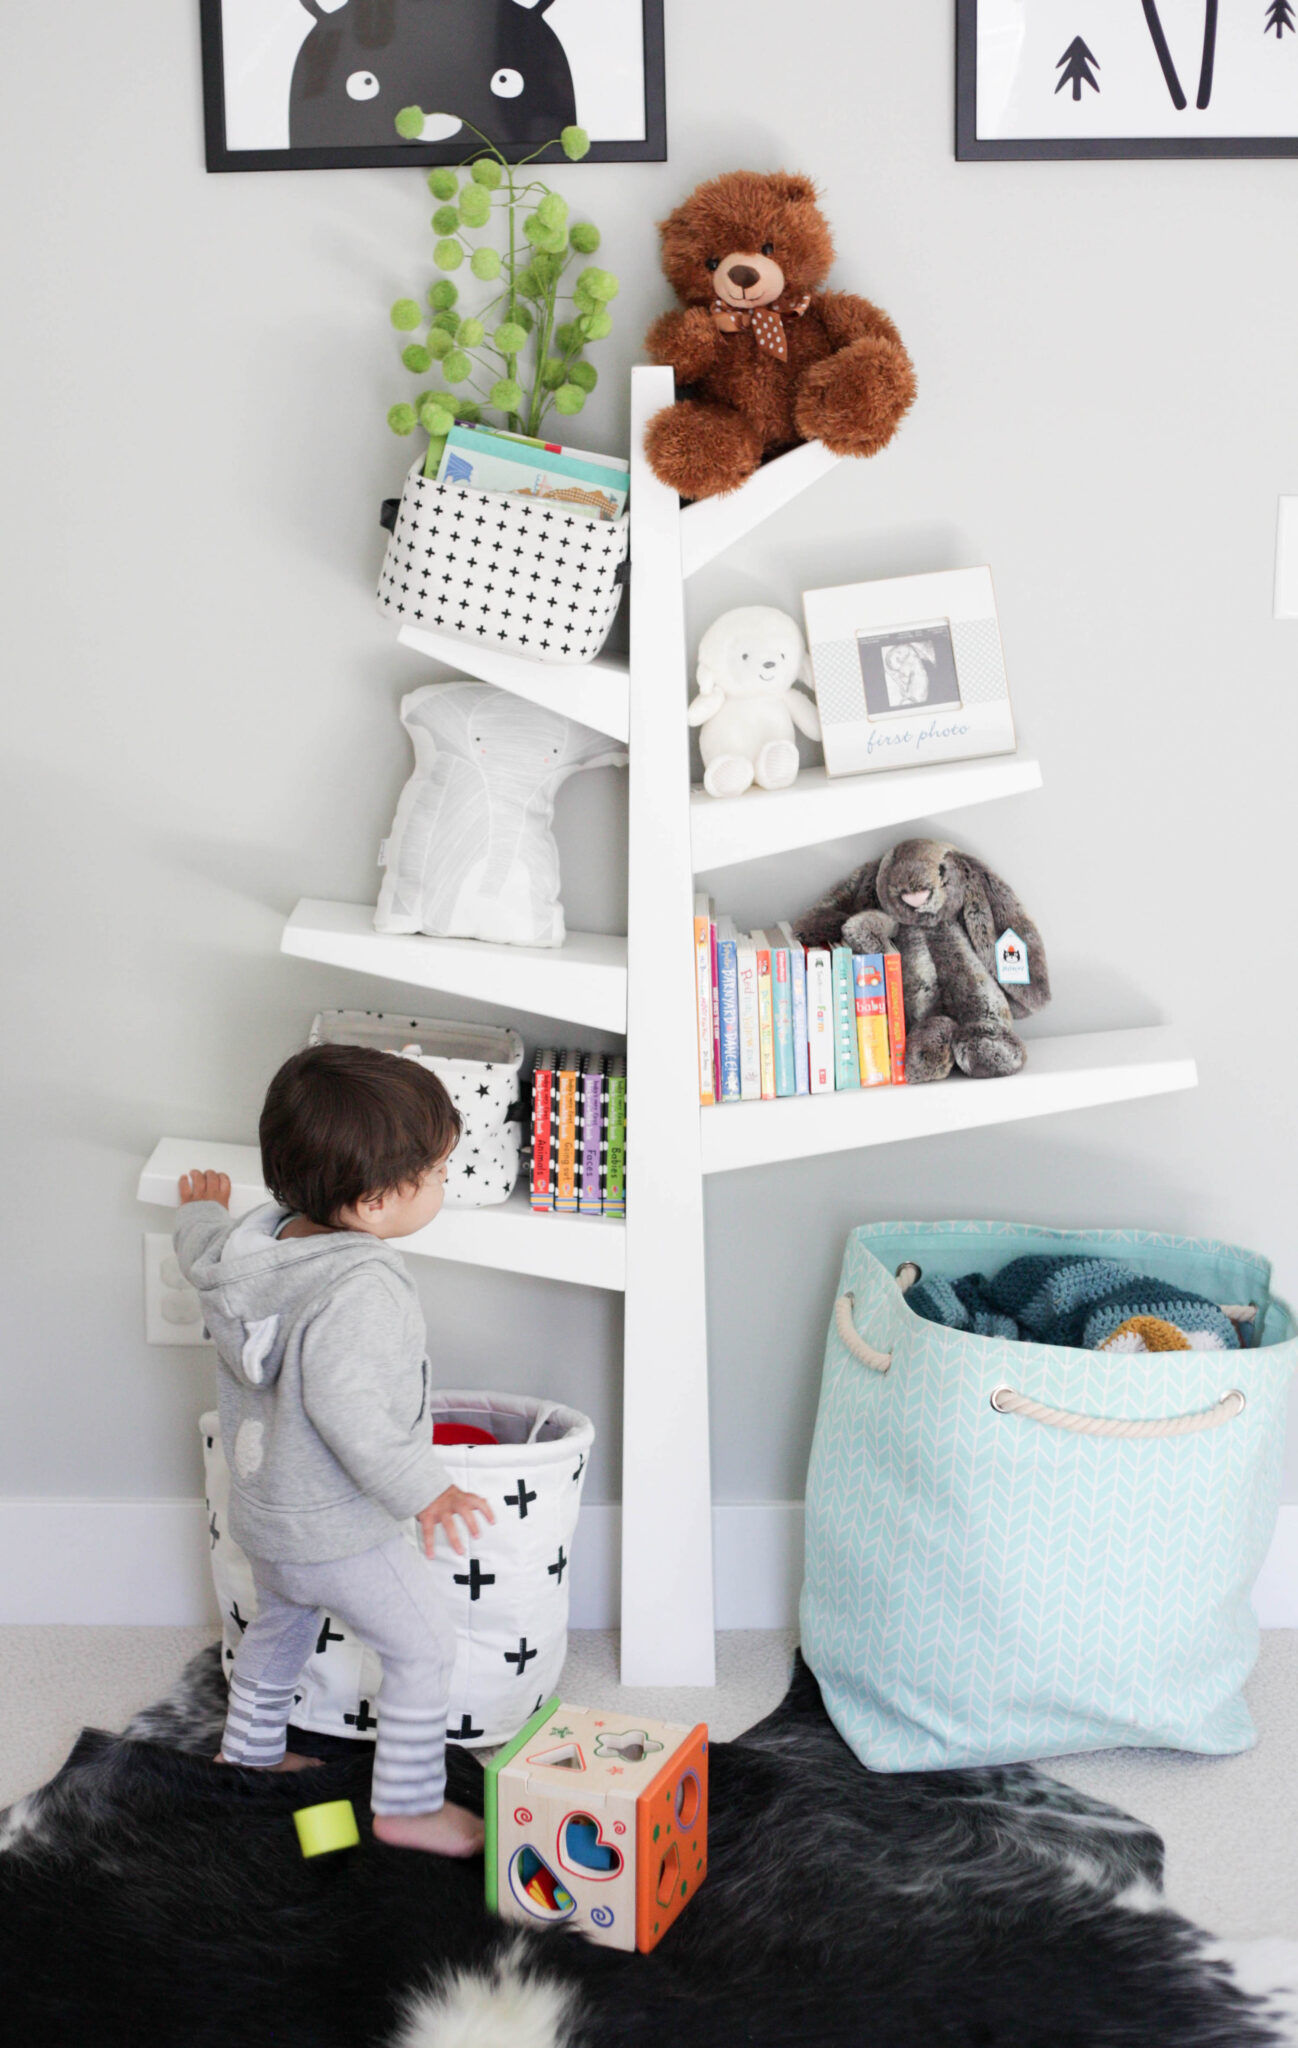 nursery ideas for boys - modern kid room with tree bookshelf